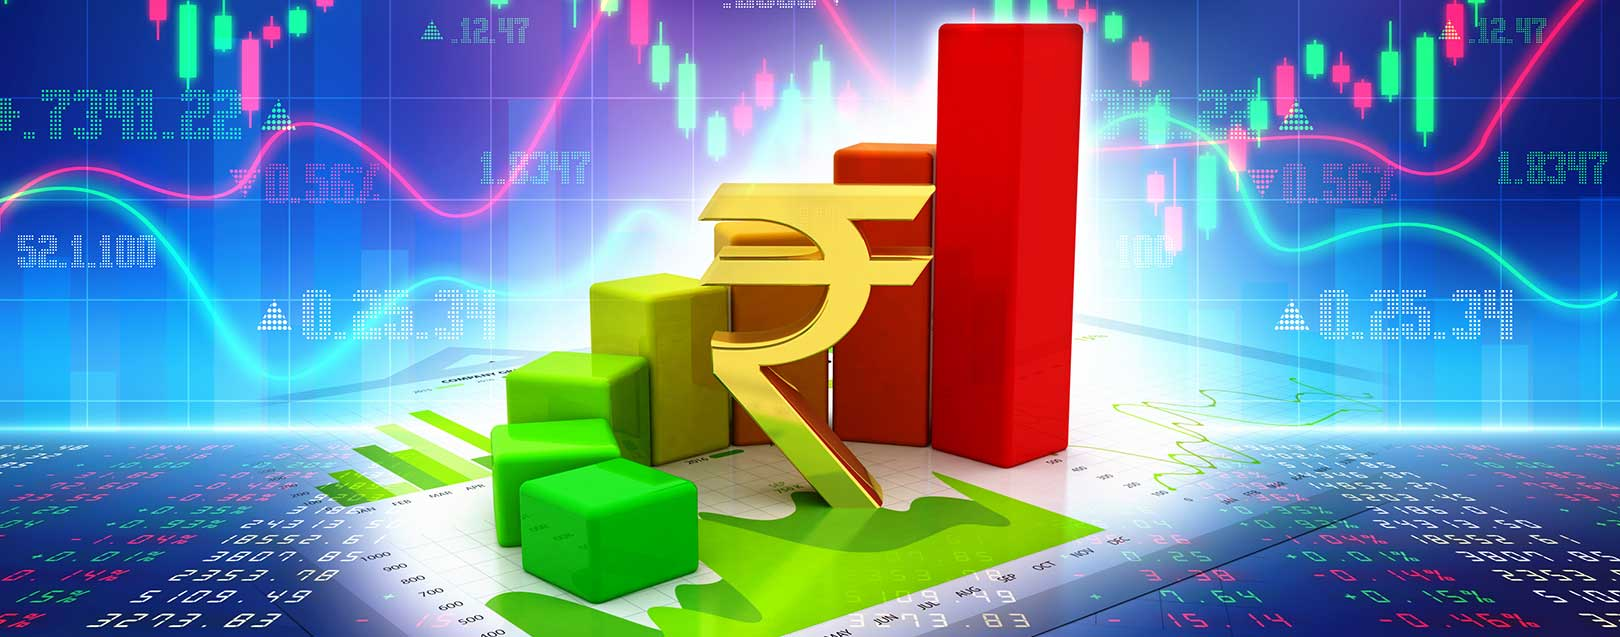 Demonetisation pushes down GDP growth; economy grows 6.1% in Q4